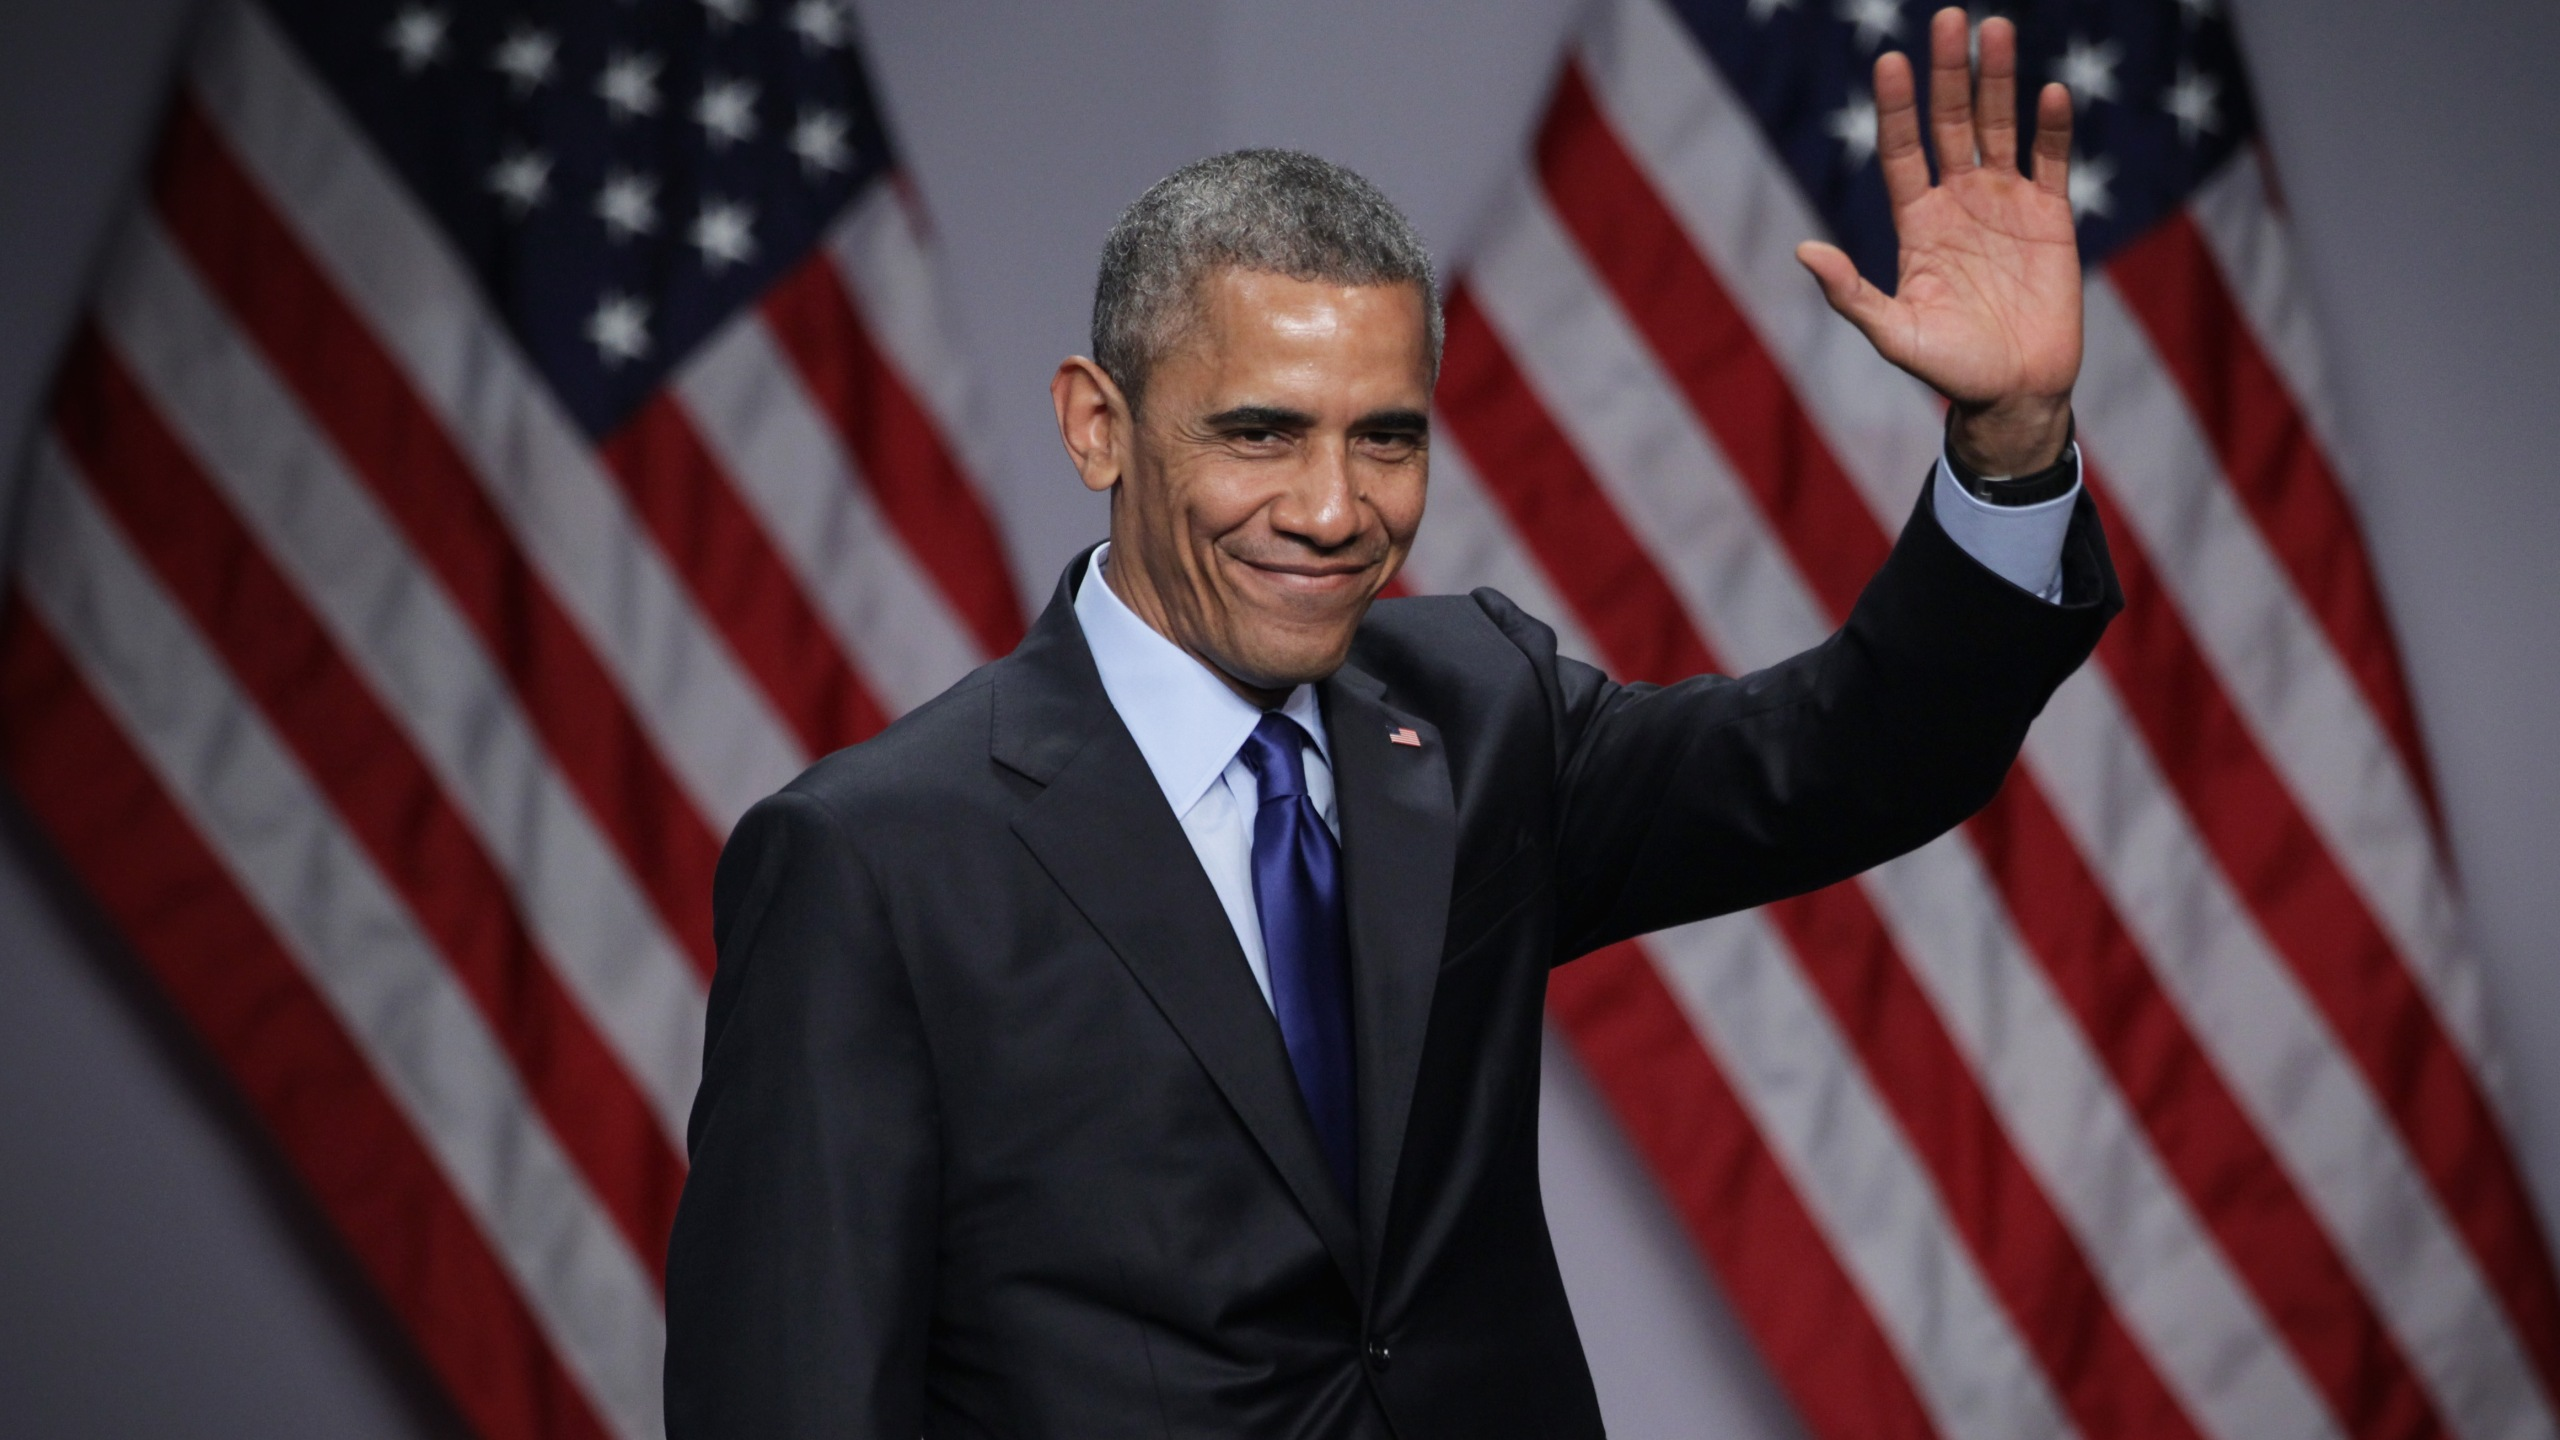 President Barack Obama waves after he spoke during the SelectUSA Investment Summit March 23, 2015 in National Harbor, Maryland. (Credit: Alex Wong/Getty Images)